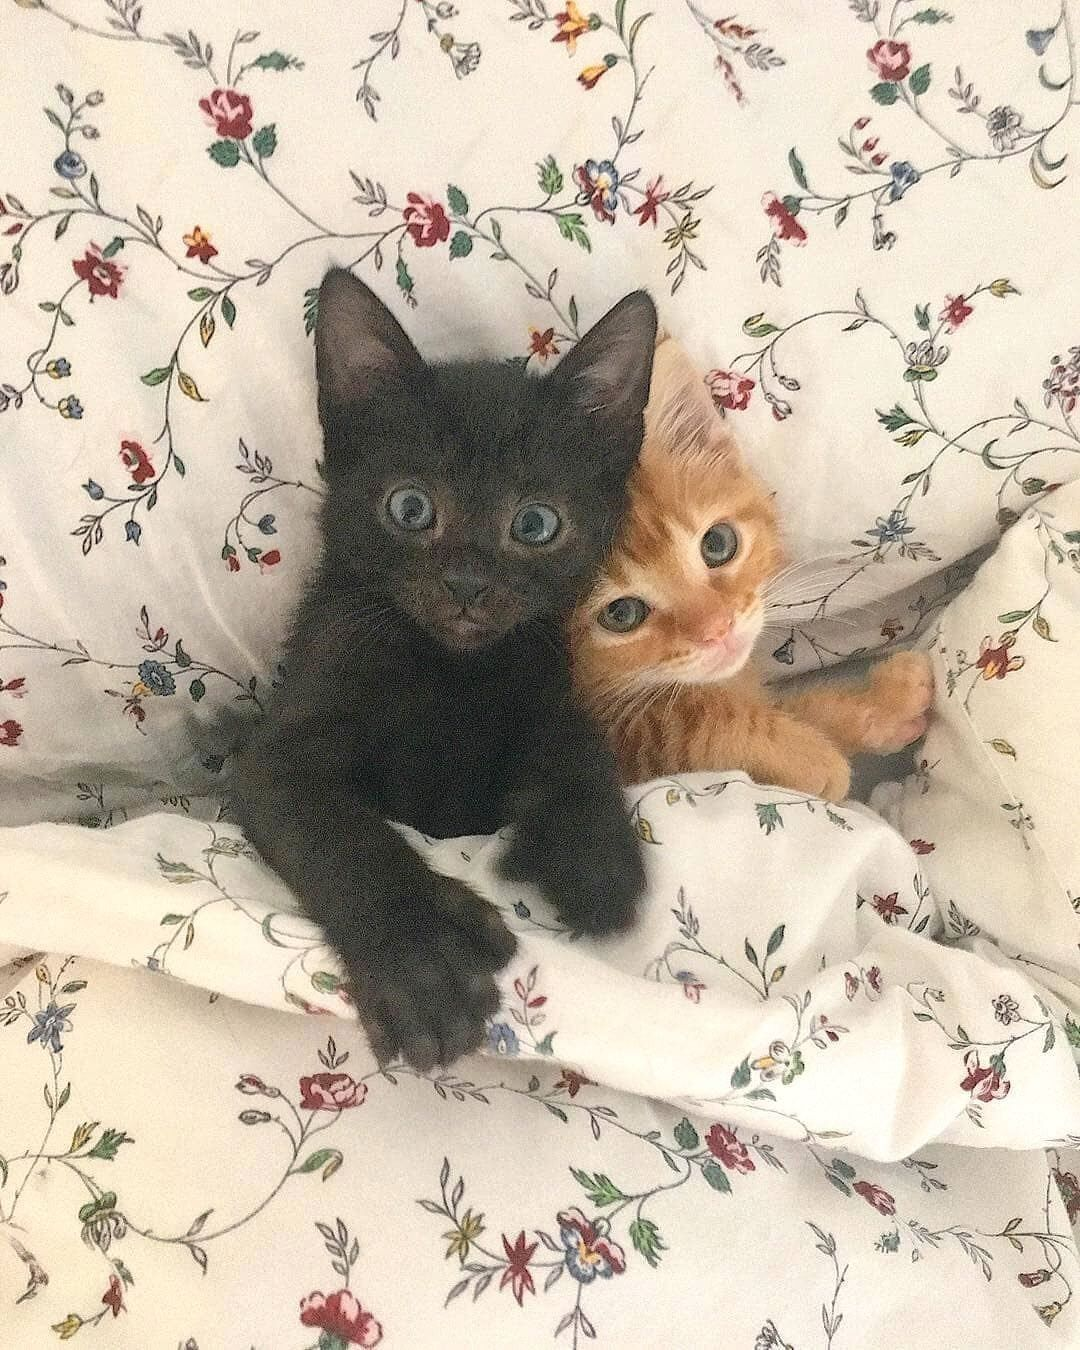 Cat Cats Igcats Instacats Catsofinstagram Catspeople Catpic Catpictures Catsbeingcats Bigcat Kitte In 2020 Cute Cats Cute Baby Animals Cute Cats And Kittens